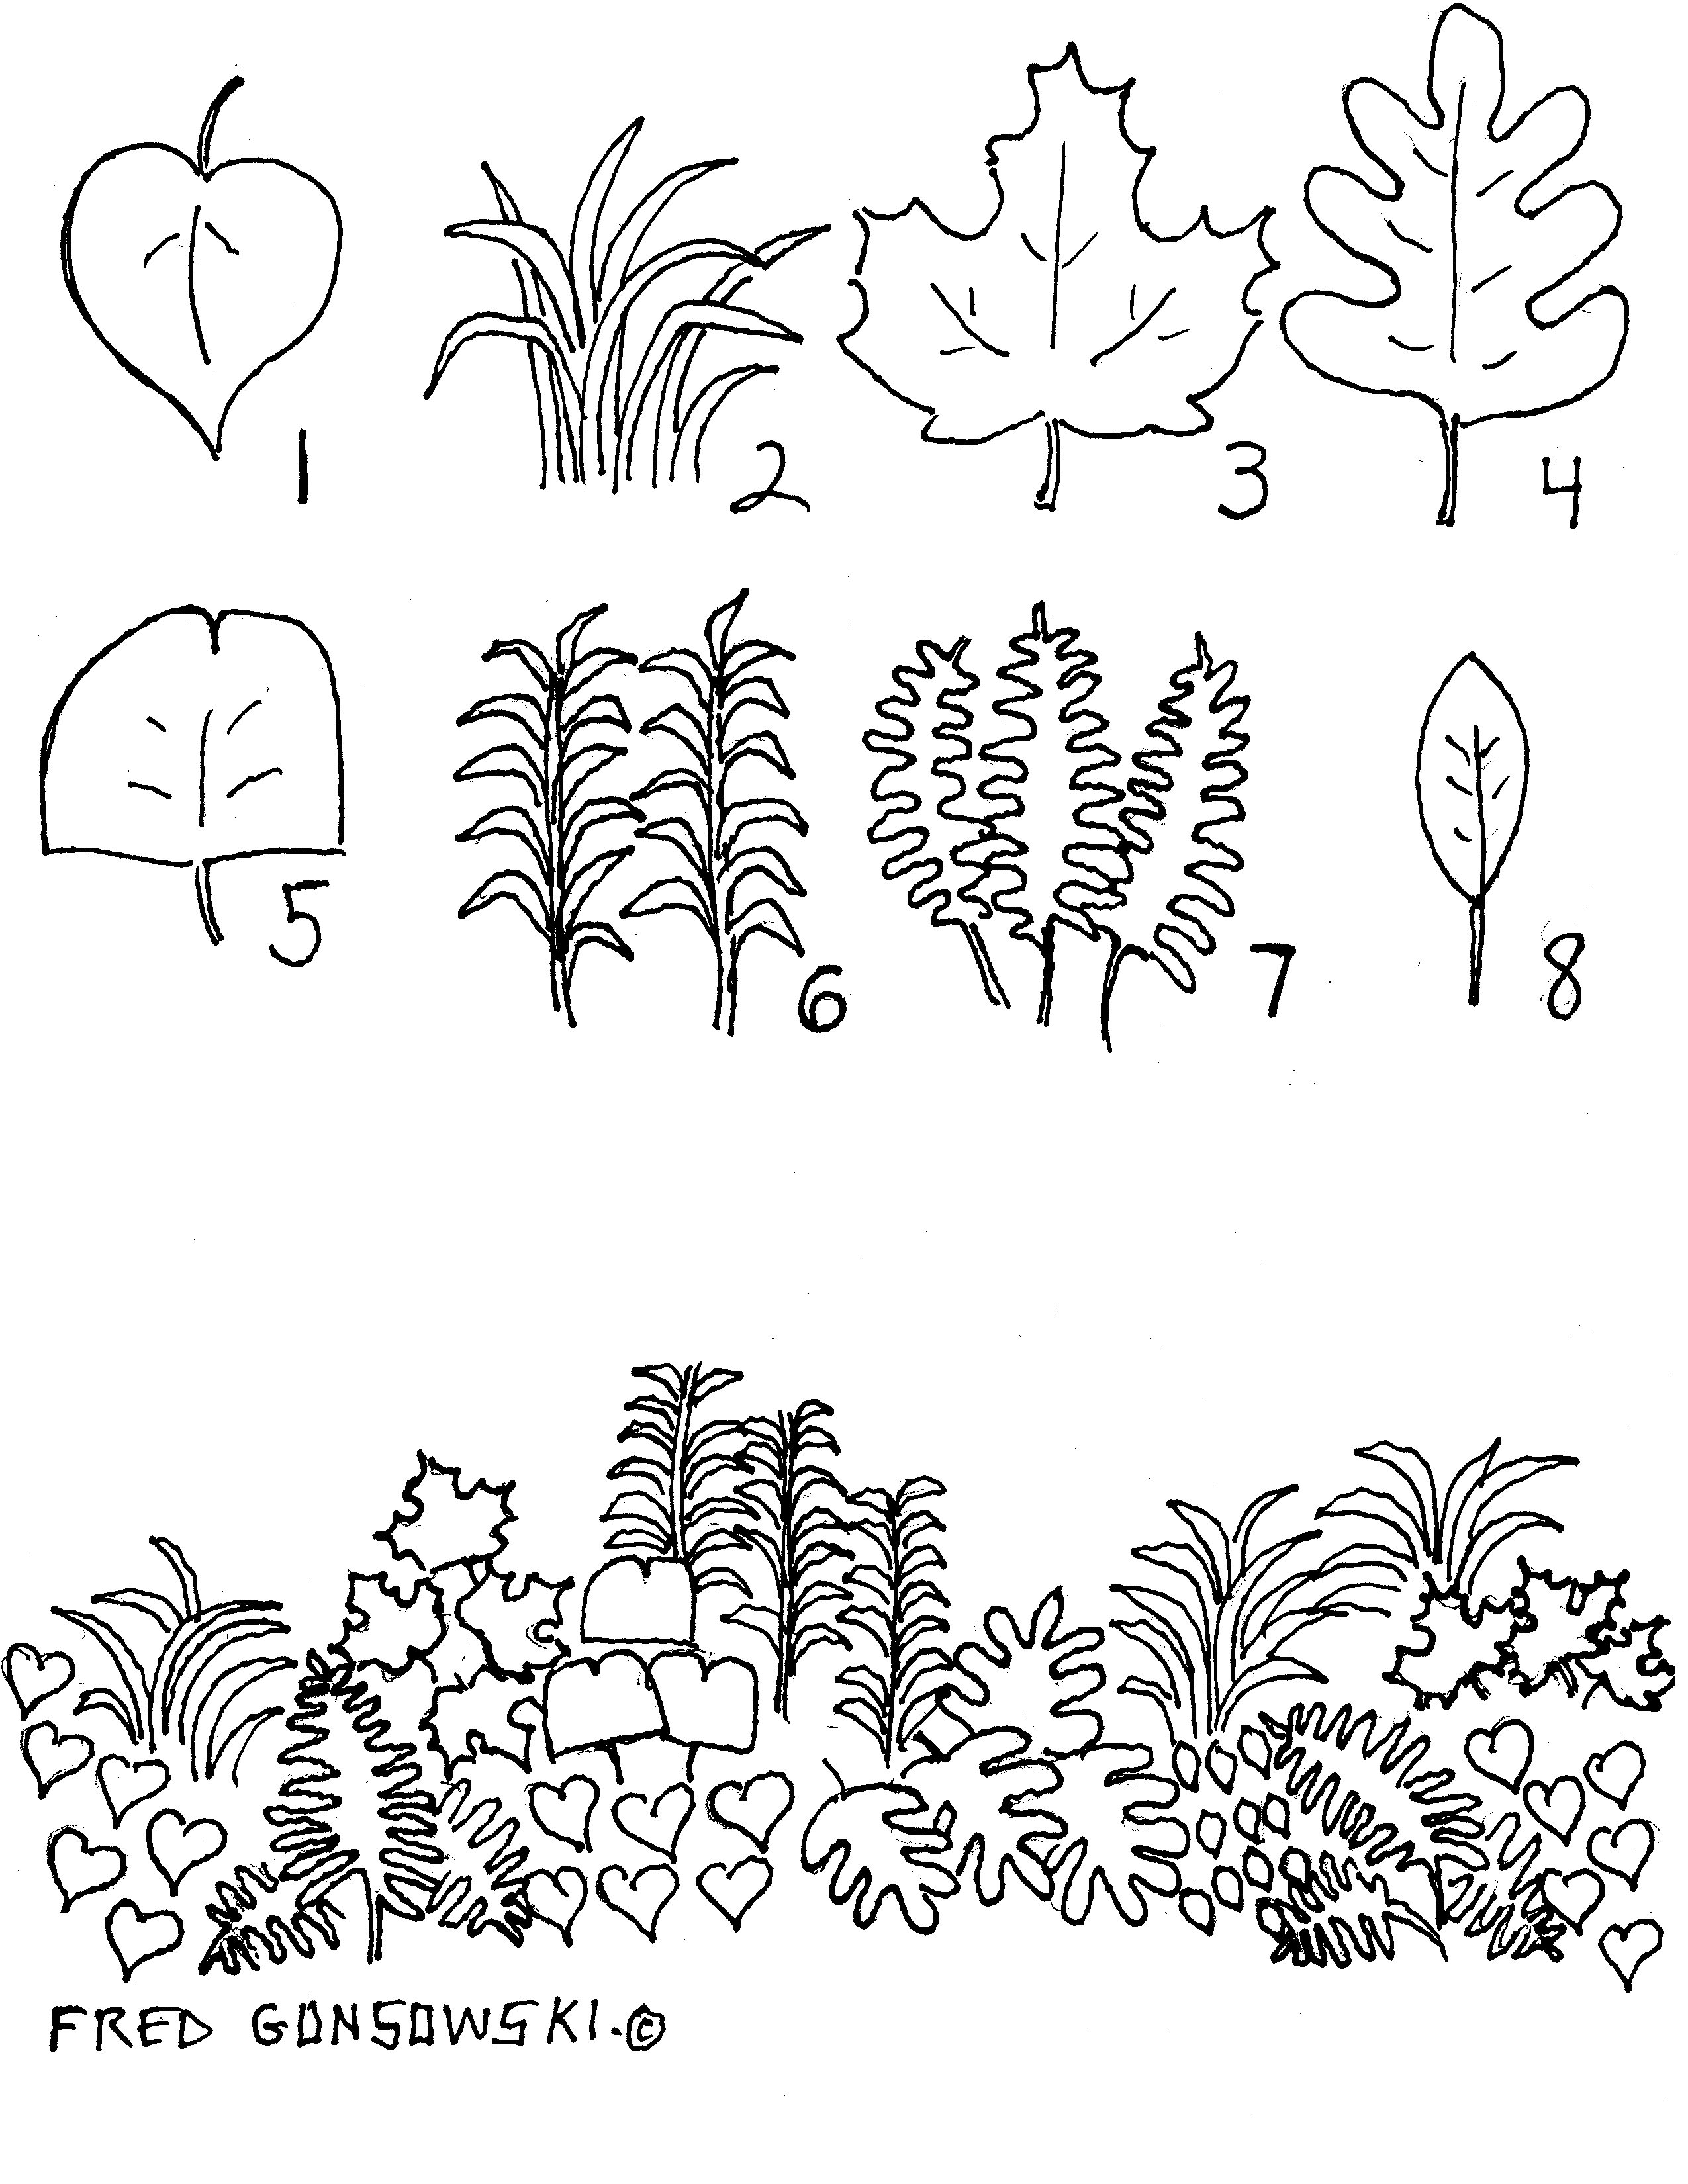 Perennial Garden Design Is All About Shapes Of Leaves.